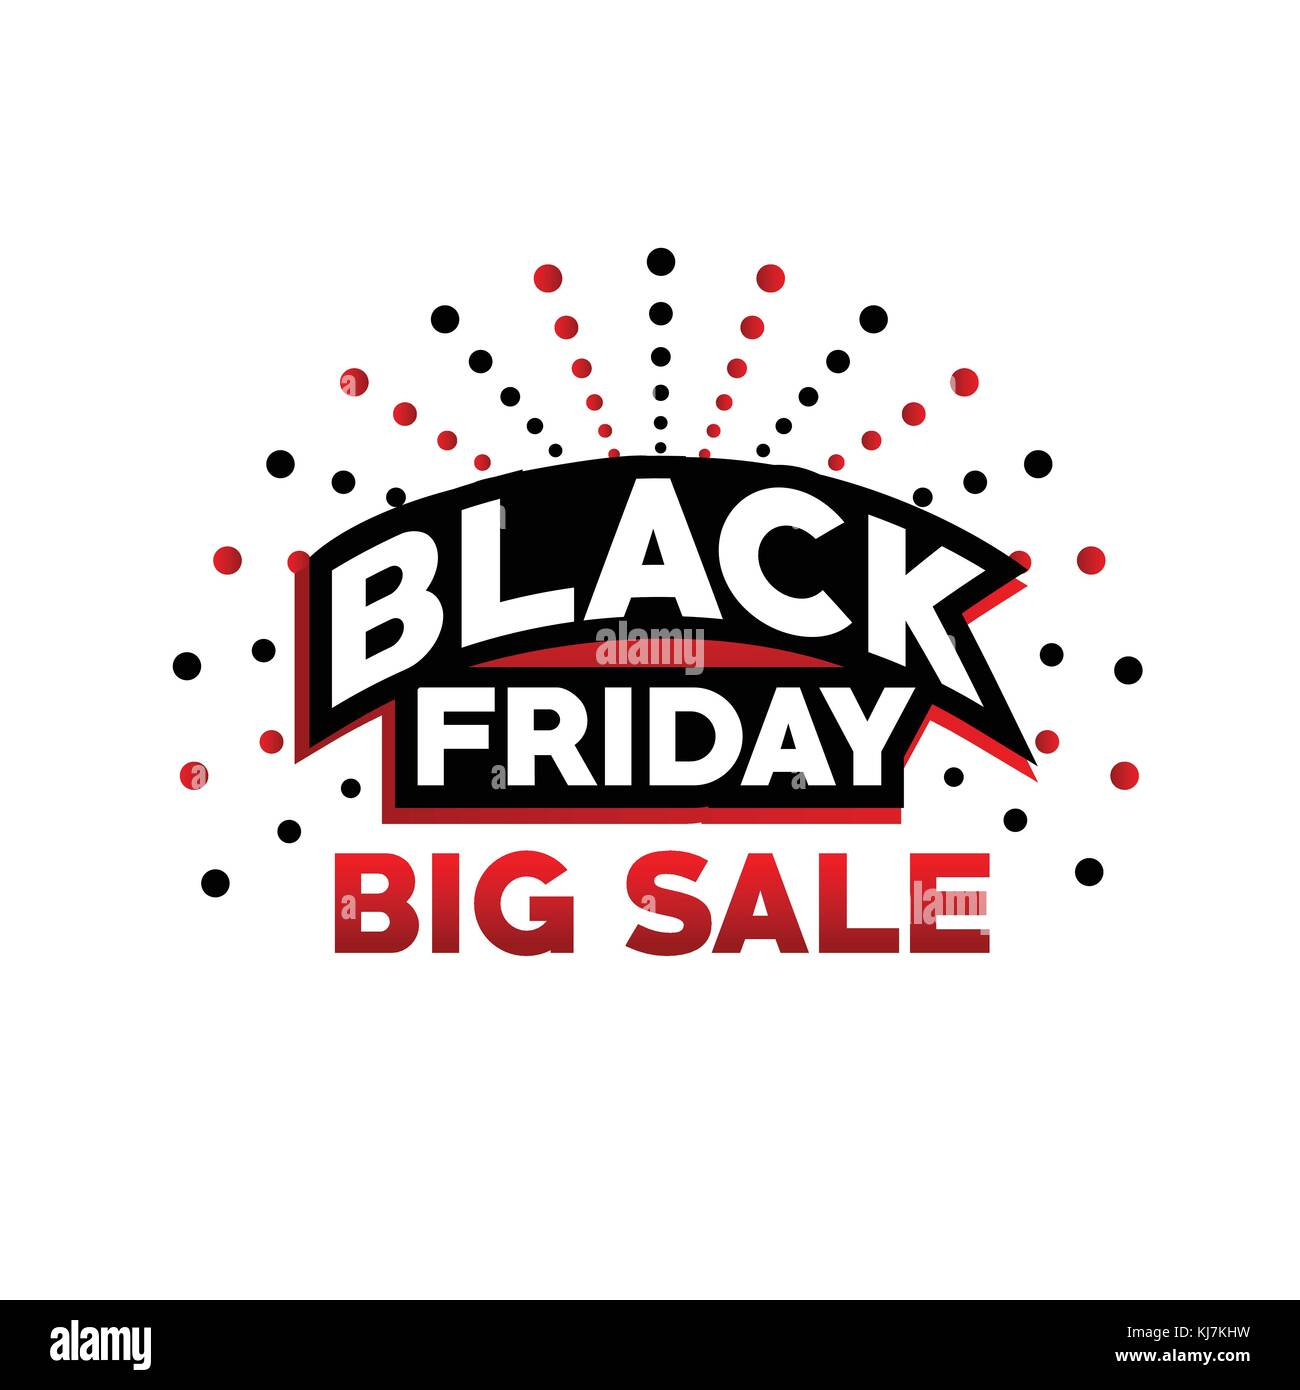 c7e292b5f9a5 black friday big sale, black friday with dots, bold black friday sign, black  friday offer vector, isolated on white background.